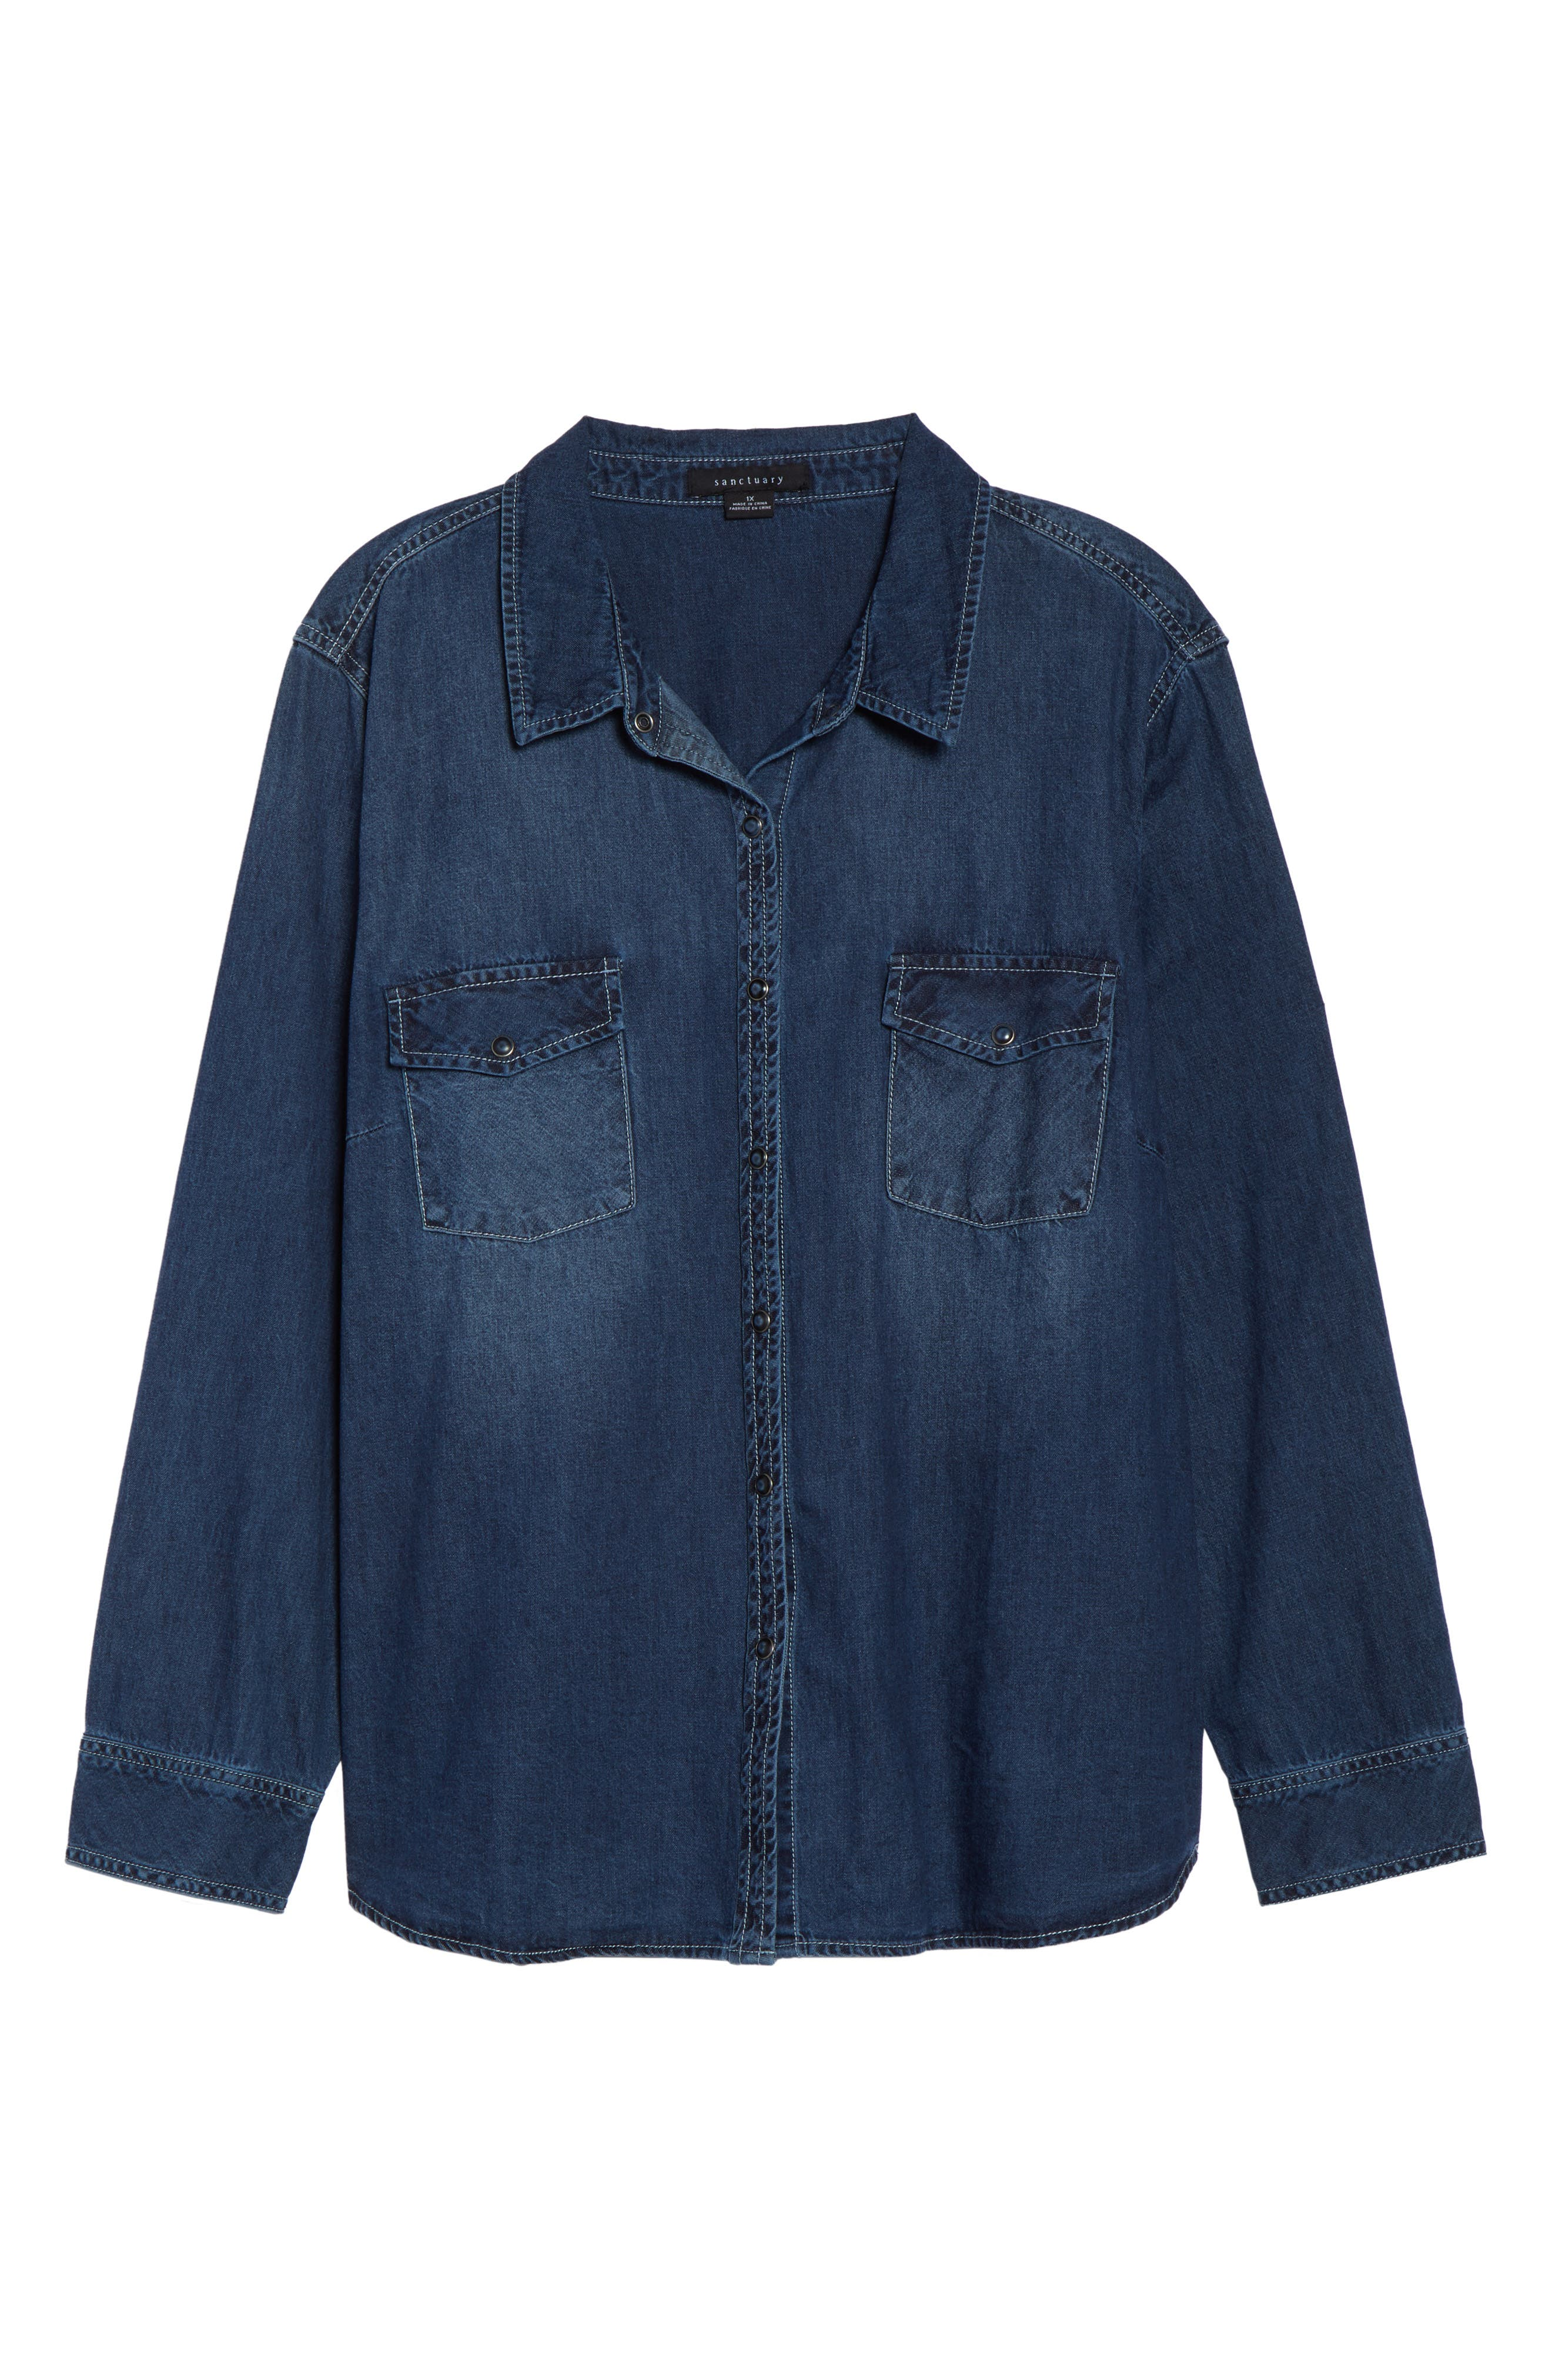 SANCTUARY,                             Denim Work Shirt,                             Alternate thumbnail 7, color,                             438